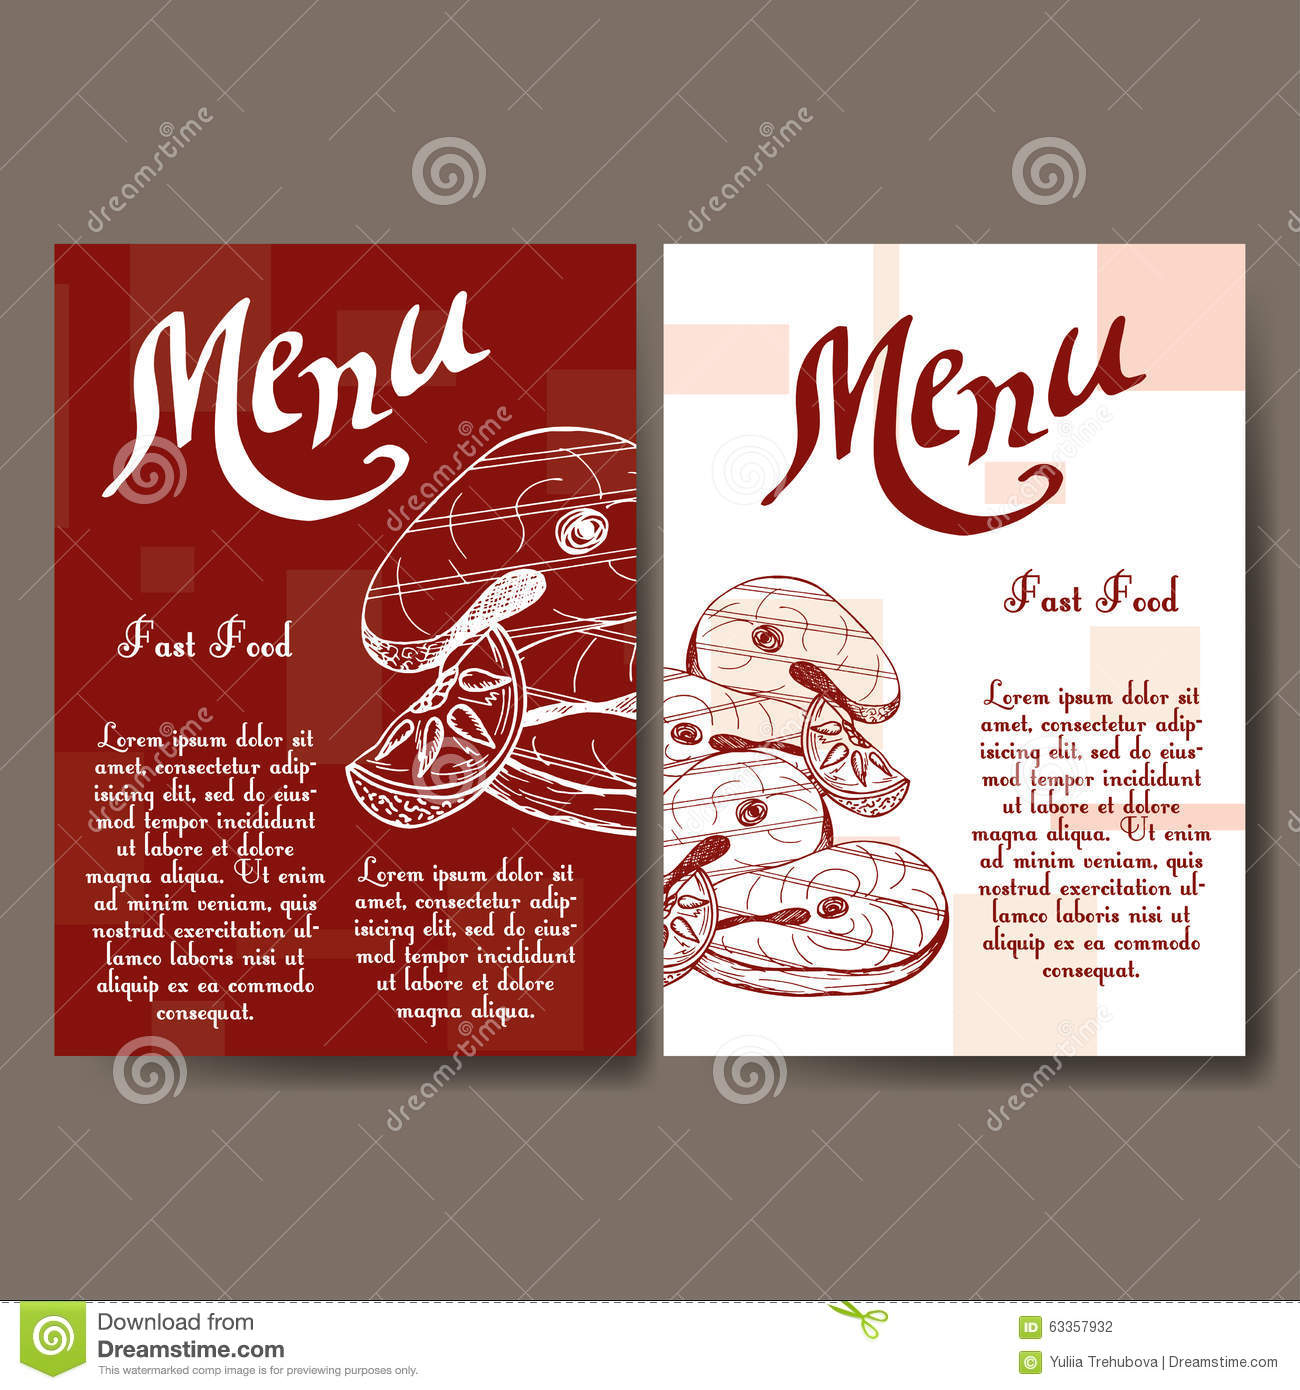 Cafe menu with hand drawn design fast food restaurant menu template download comp flashek Choice Image